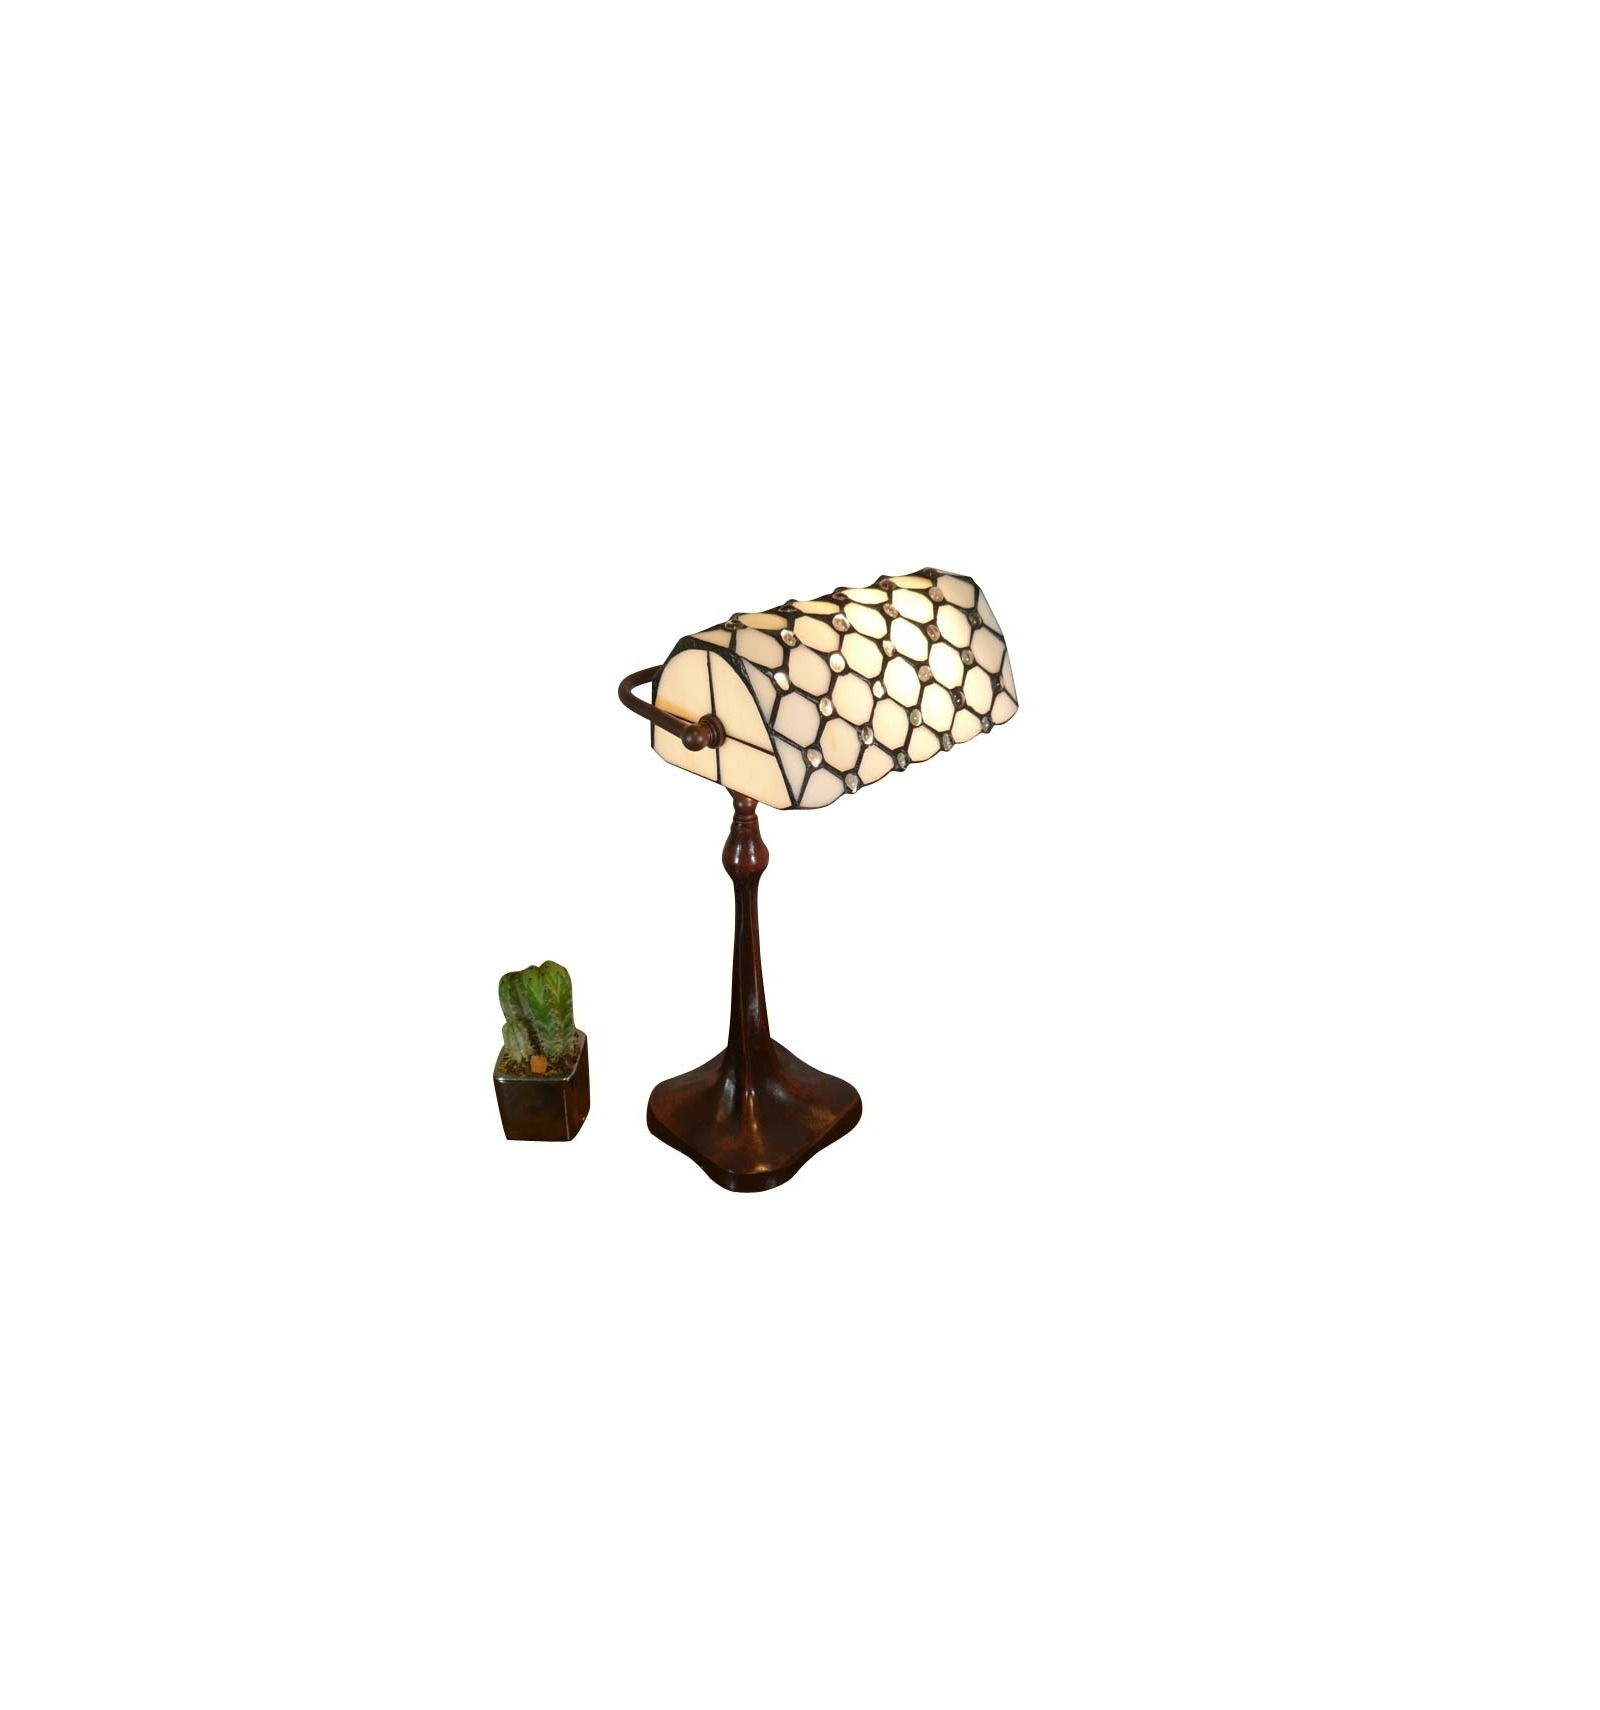 Lampe Du Bureau Desk Lamp Tiffany Style To Read And Work